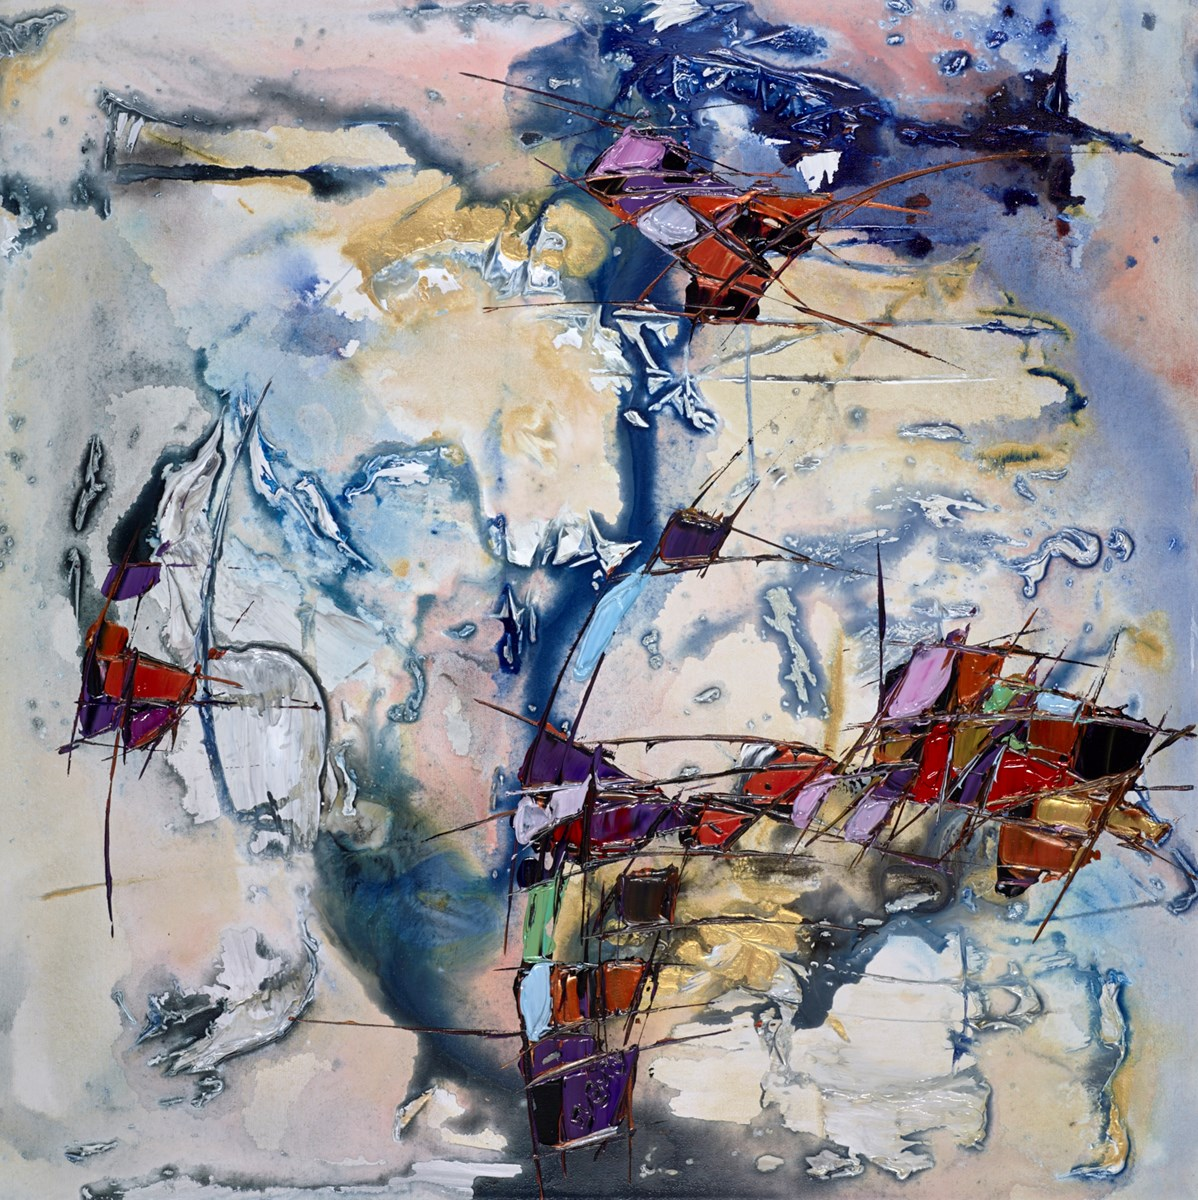 Fragments V by maya eventov -  sized 30x30 inches. Available from Whitewall Galleries